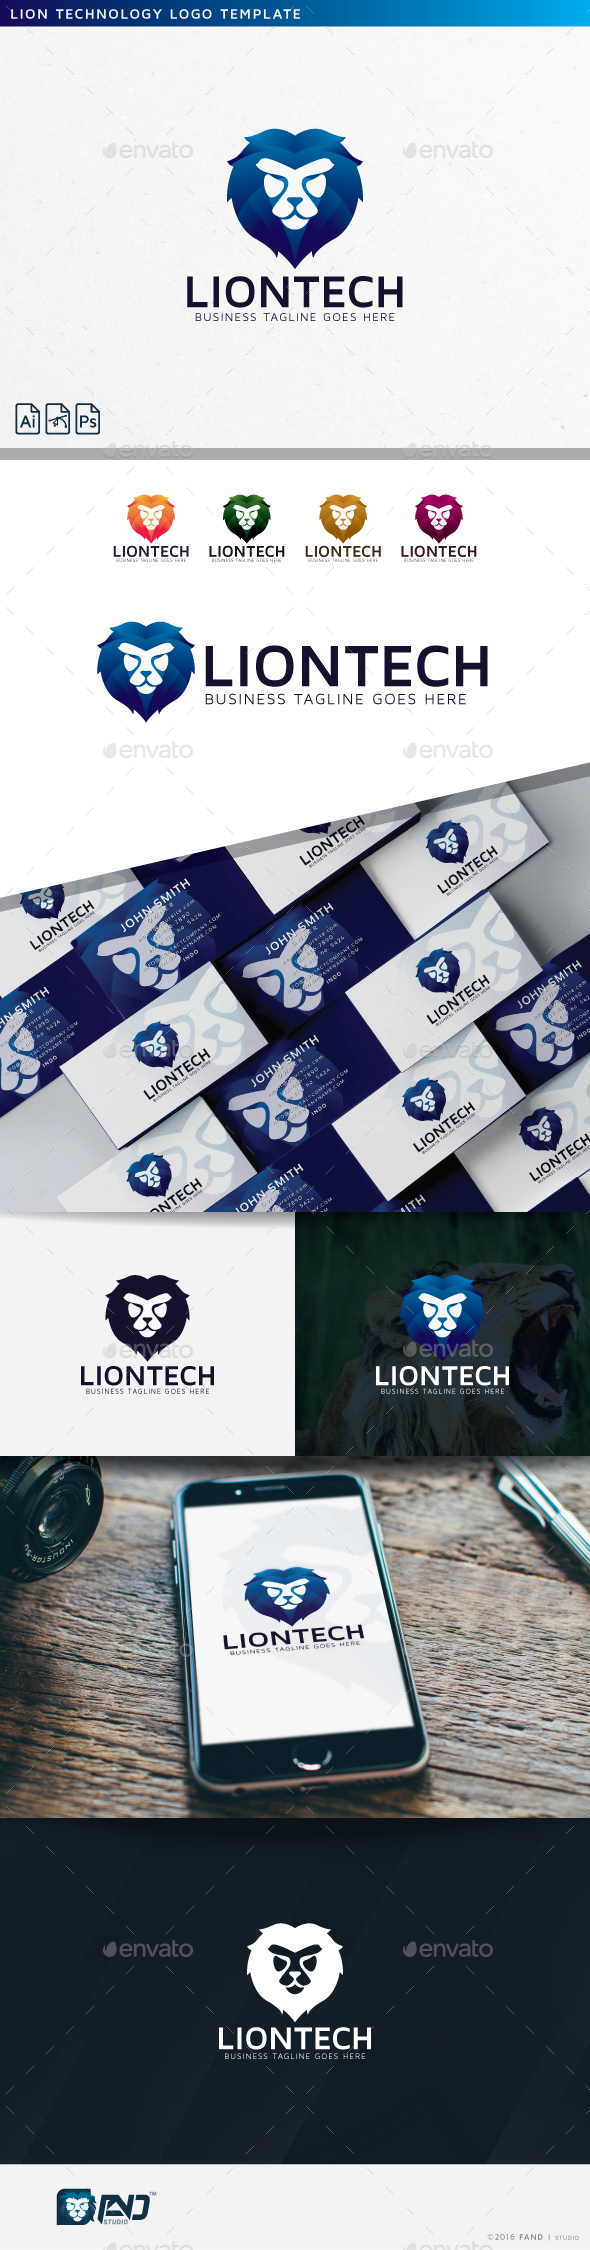 Lion Technology - Logo Template - Vector Abstract